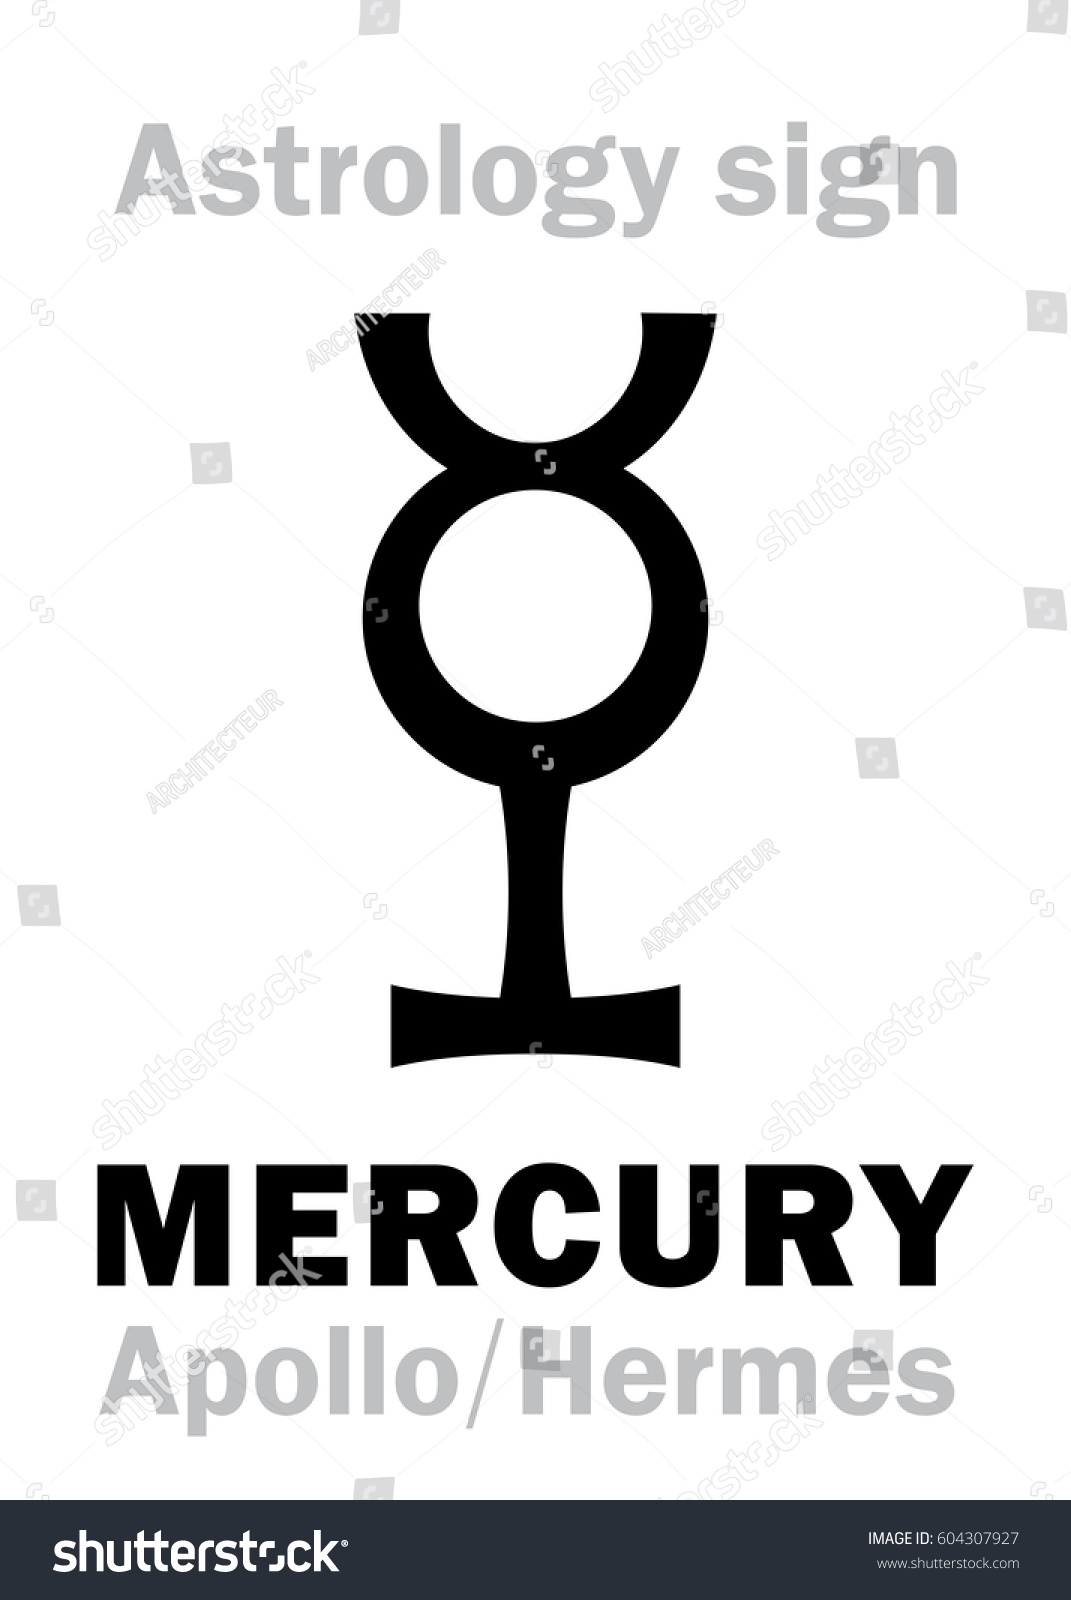 Demeter greek symbol choice image symbols and meanings astrology alphabet mercury apollohermes planetary star stock astrology alphabet mercury apollo hermes the planetary star planet buycottarizona Gallery